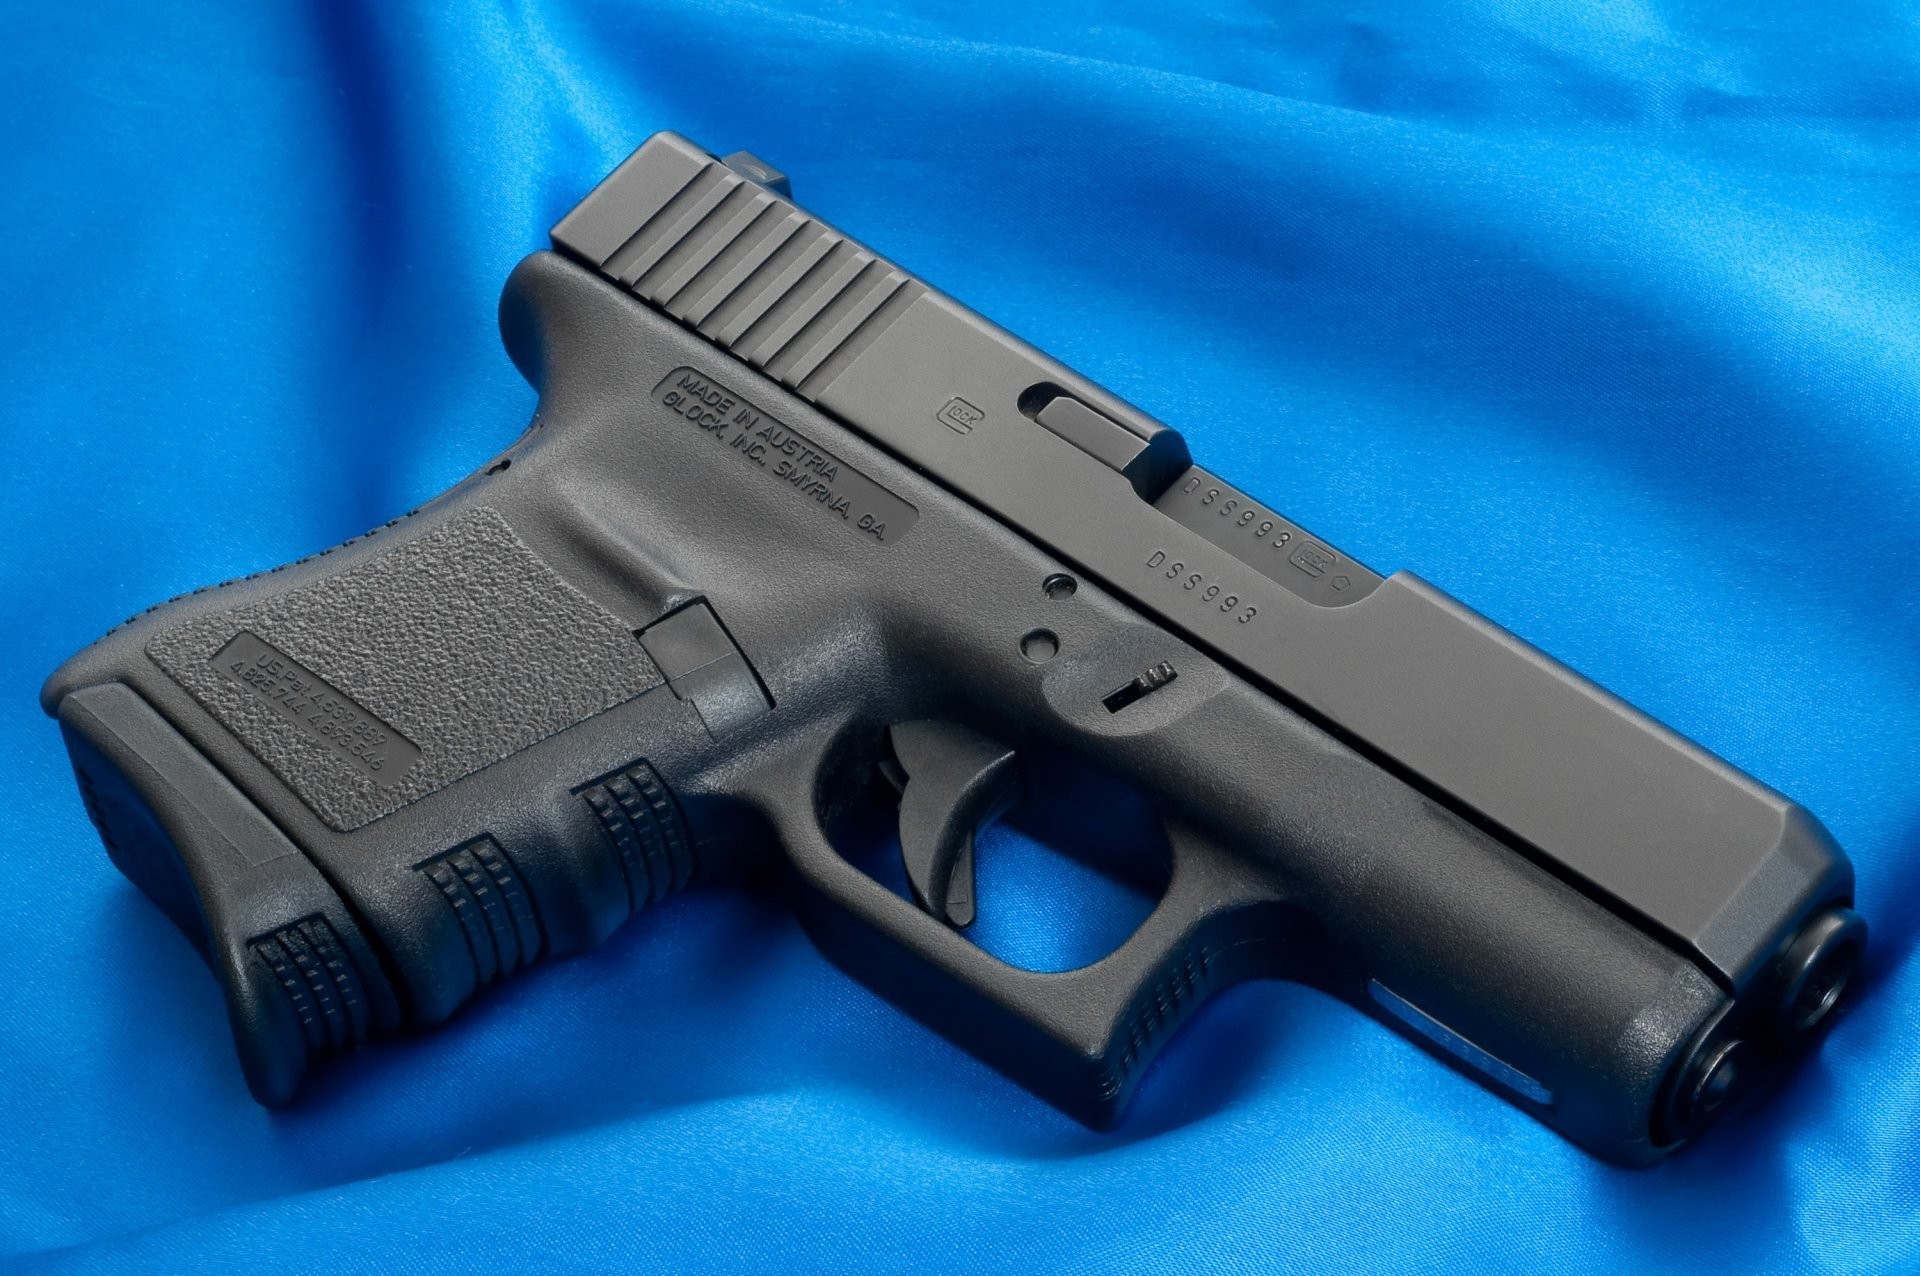 glock weapons wallpapers glock gun weapon wallpaper canvas blue cloth  background